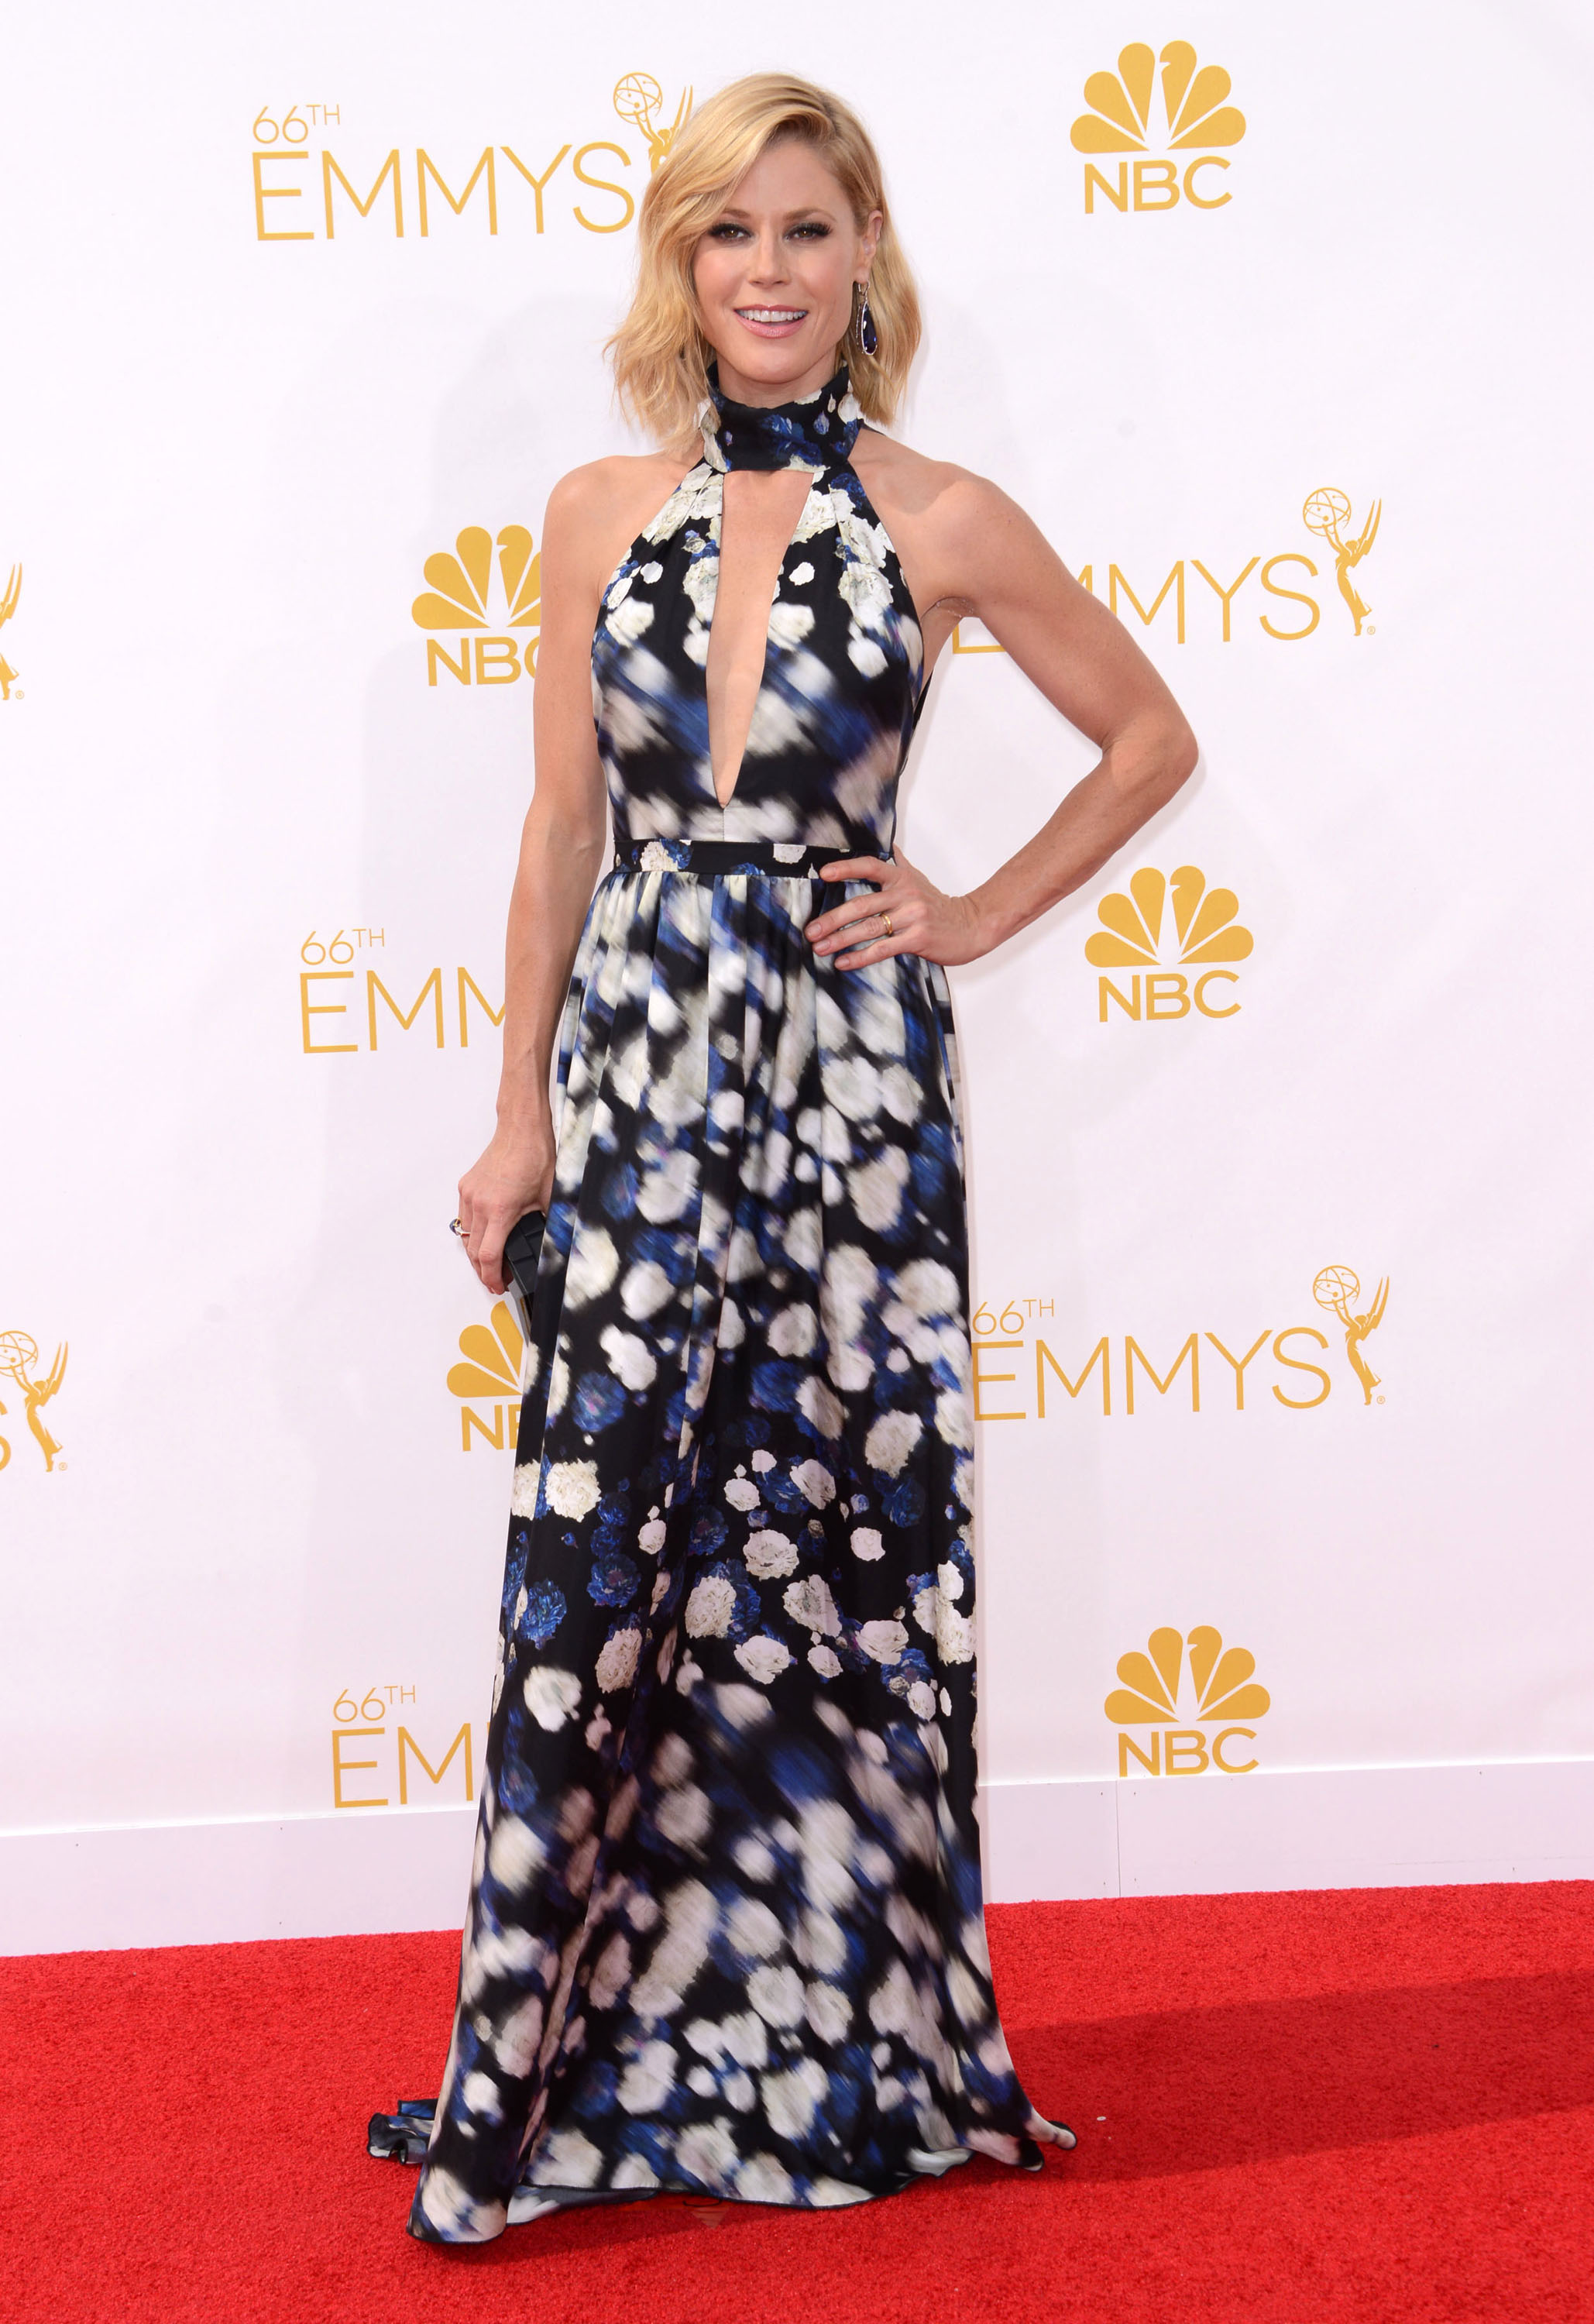 Emmys Well Played: Julie Bowen